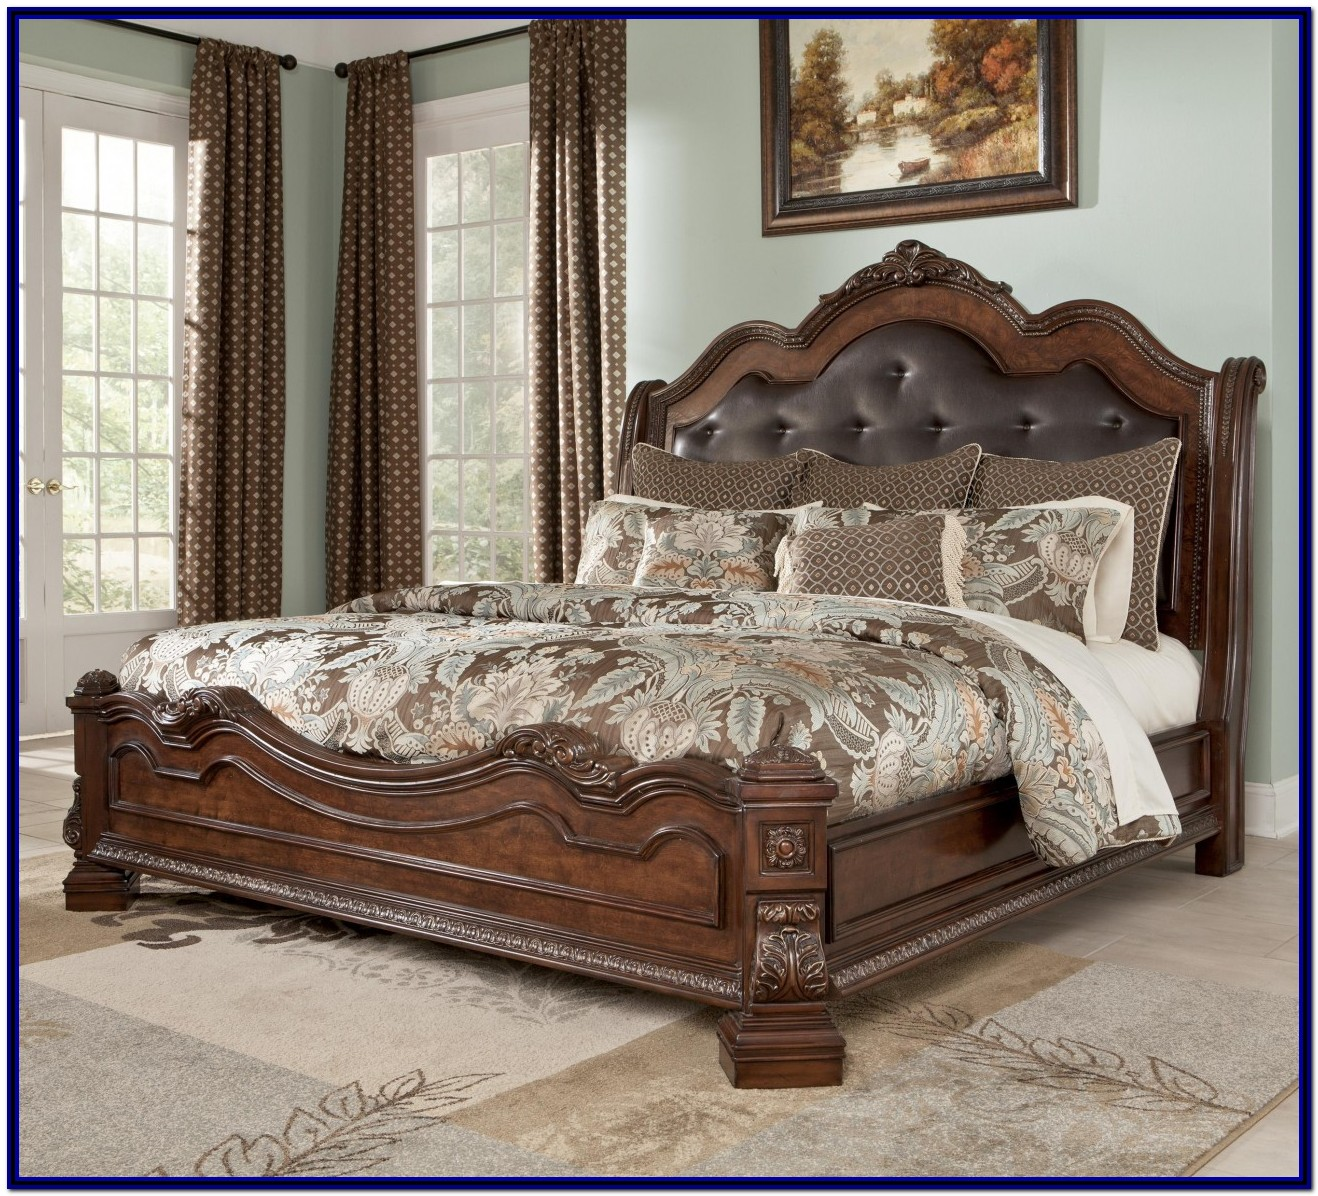 King Bed Frame With Storage And Headboard